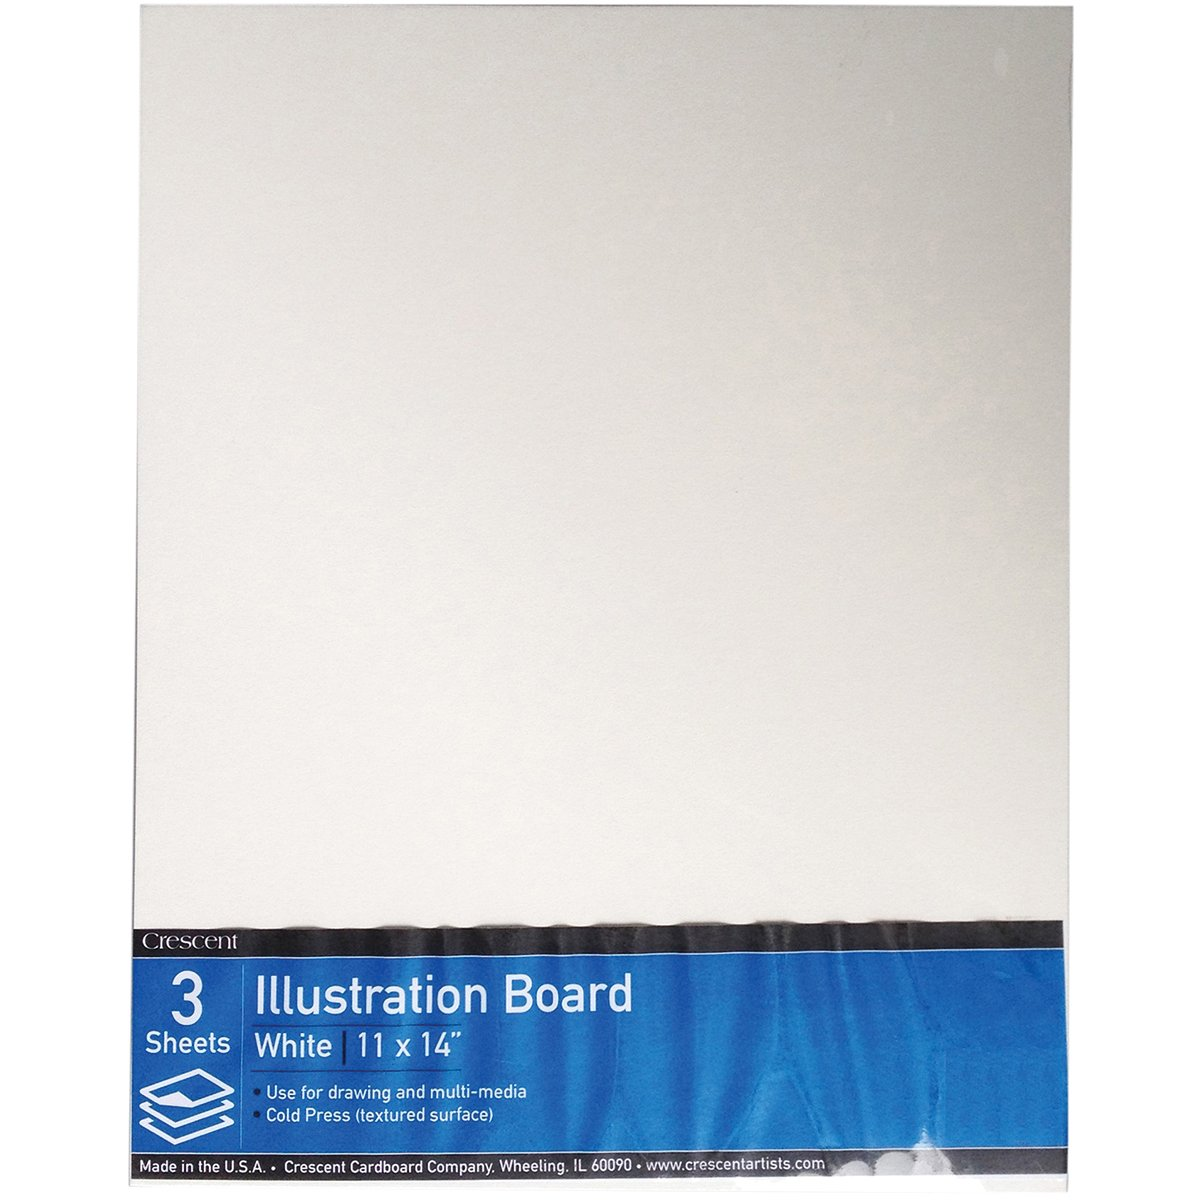 Crescent Creative Products VP99-1114#99 Illustration Board, Cold Press, Value Pack, 3 Count, 11 X 14 Size 11 X 14 Size Crescent Cardboard